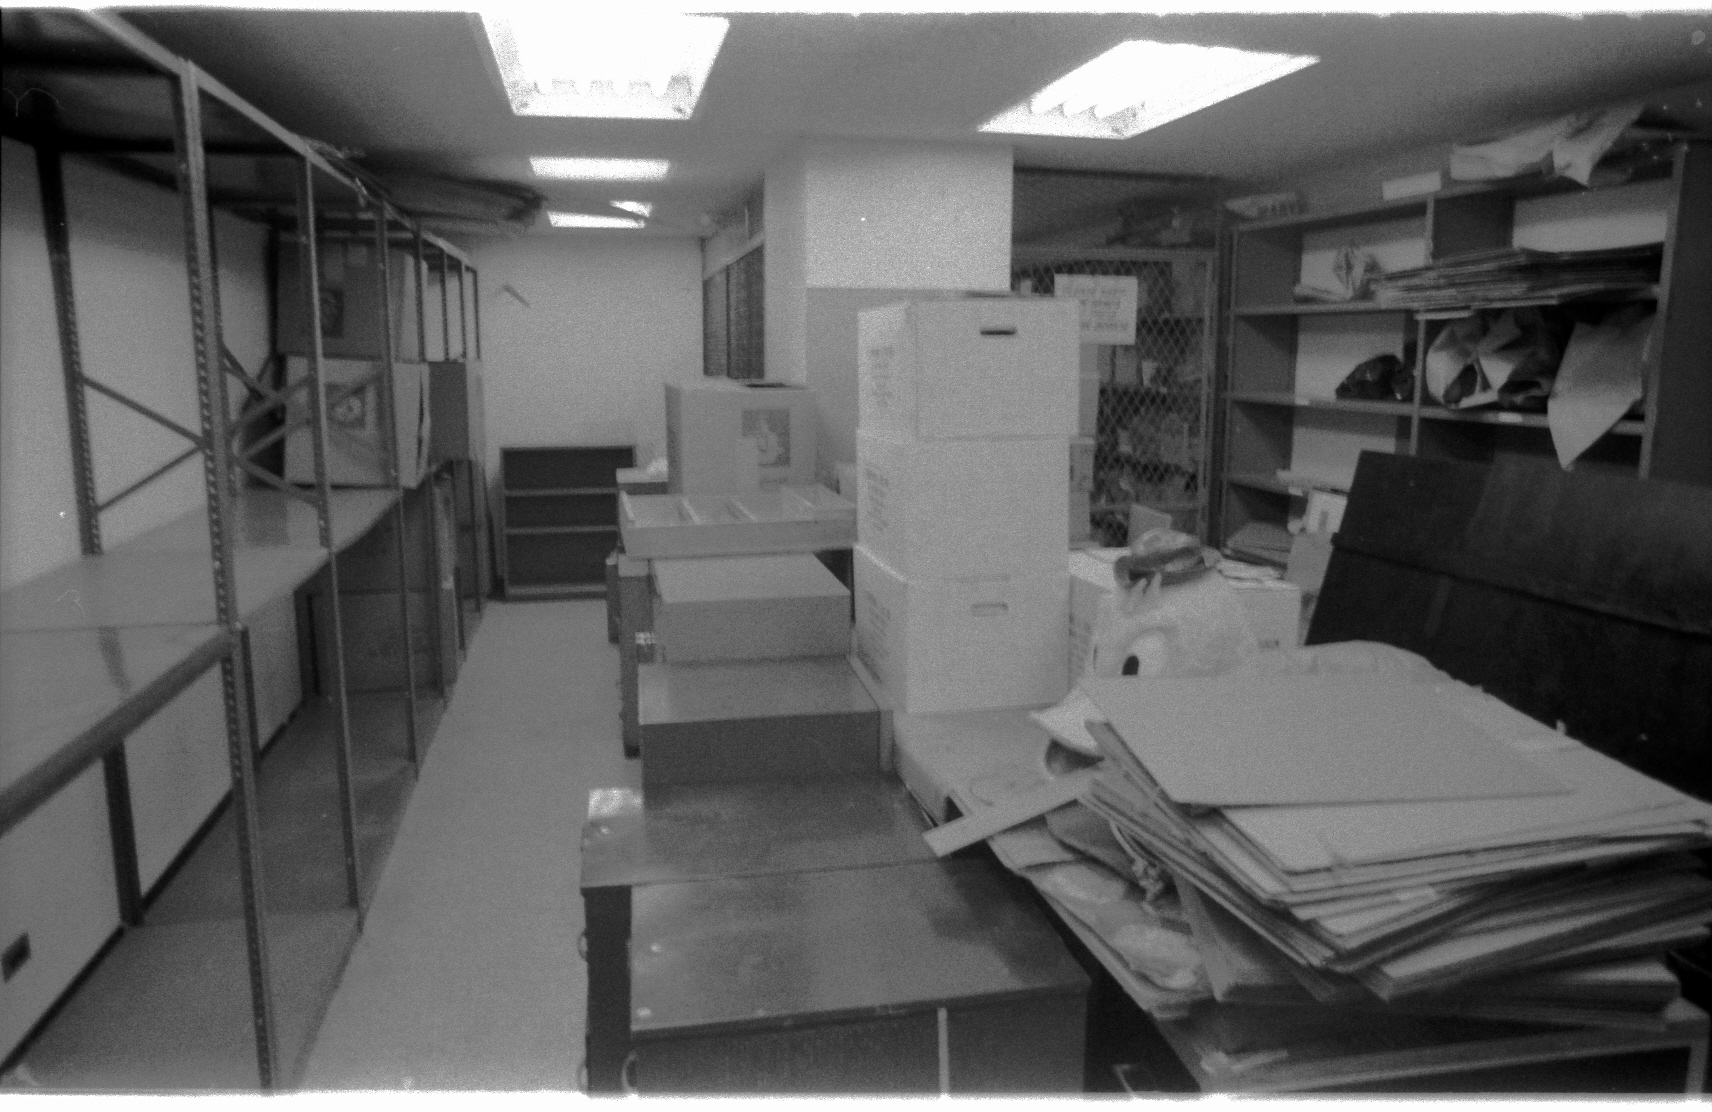 The supernaturally neat 9th Floor mailroom at 575 Madison Ave-- packed up neatly in a box, like never before. Sharp-eyed Marvelites may note a certain duck head amid the boxes... Marvel had a line of costumes worn by poor devils who appeared in them at store openings and sporting events. Some crazy idea of Marketing! This was, of course, a Howard the Duck costume! The business end of Marvel was up on 9.